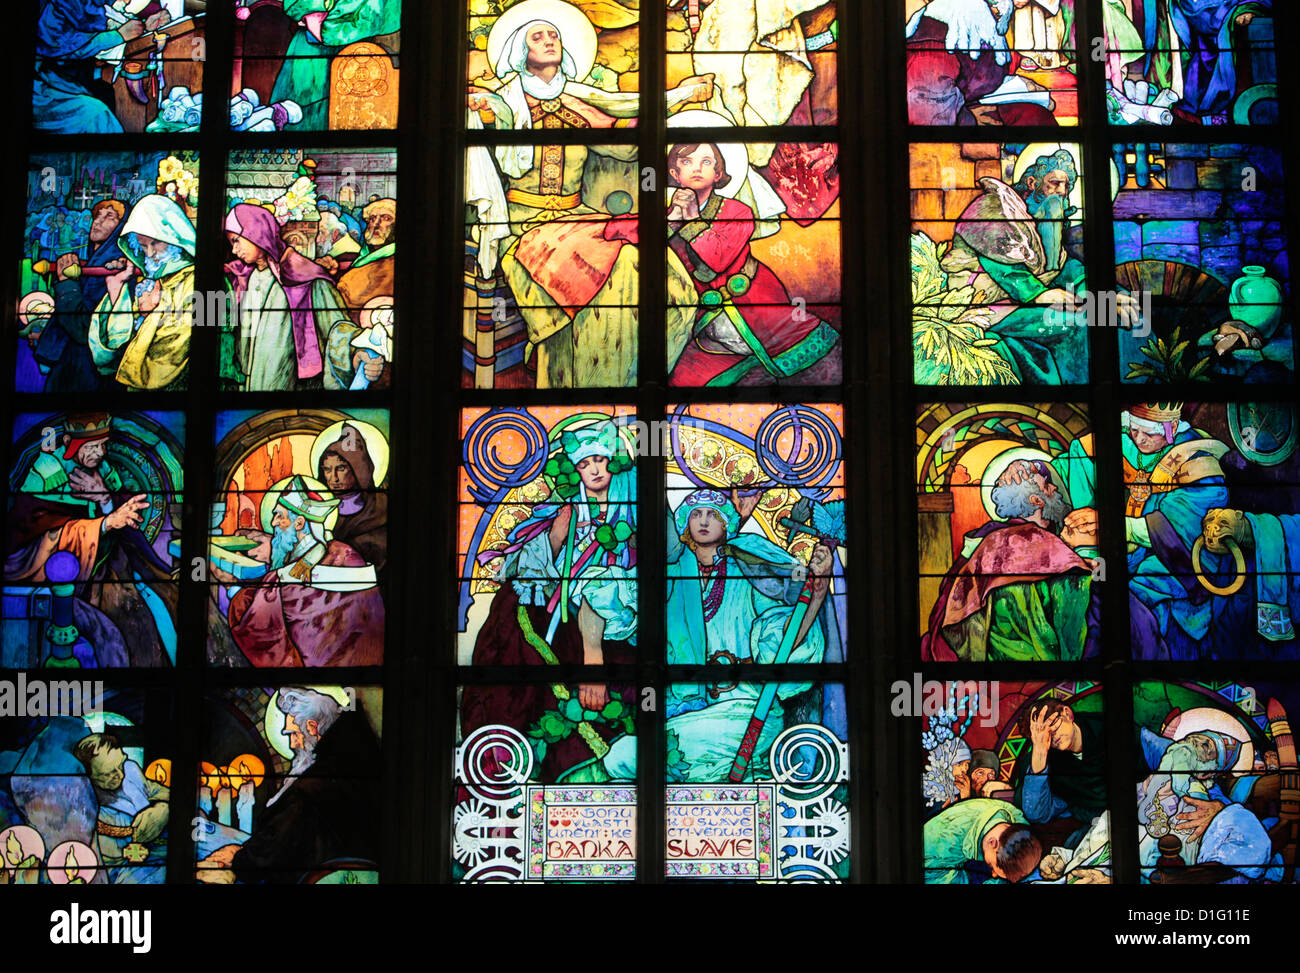 St. Vitus's Cathedral. stained glass of St. Cyril and Methodius by Alfons Mucha, Prague, Czech Republic, Europe - Stock Image